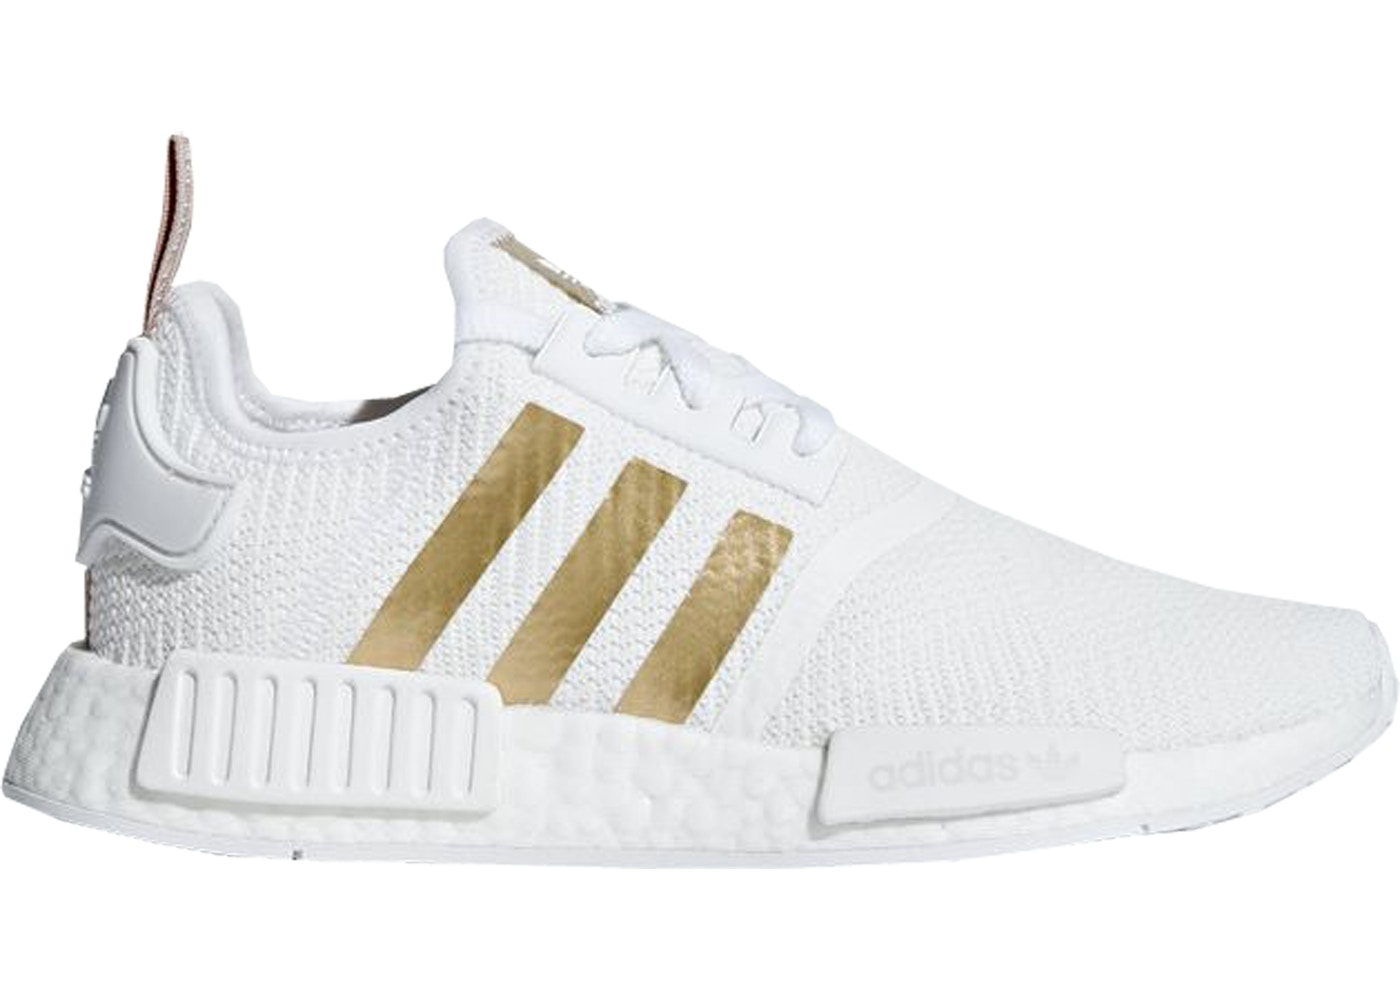 d766ef96c98e5 adidas NMD R1 Cloud White Copper Metallic (W) - B37650